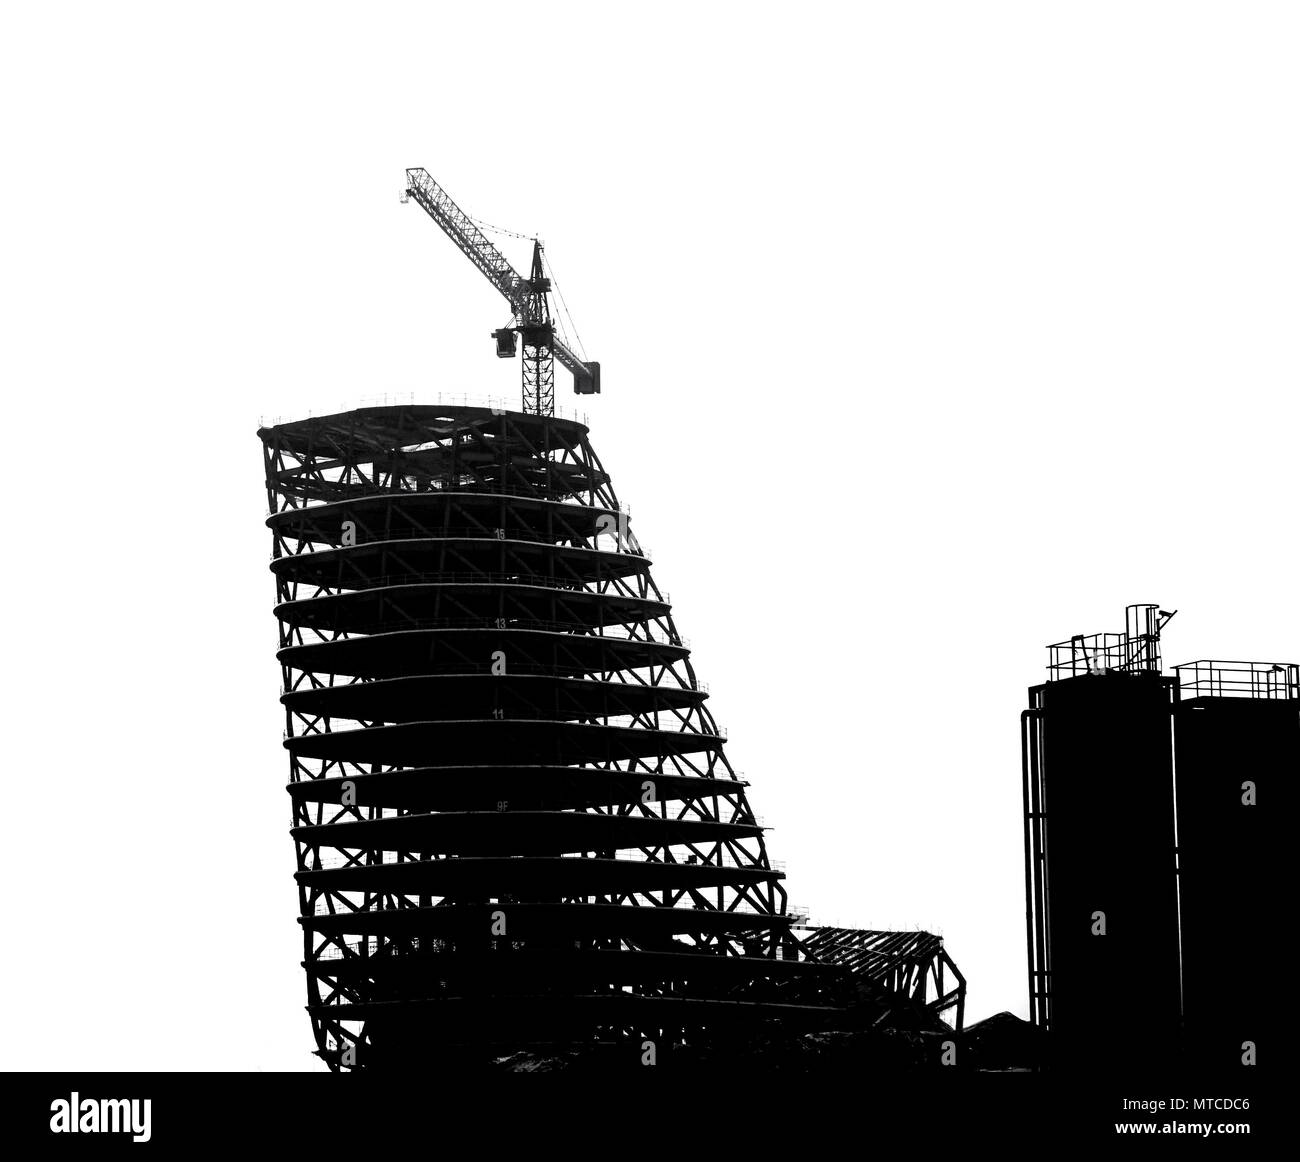 Construction site with crane and scaffolding seen as a silhouette - Stock Image